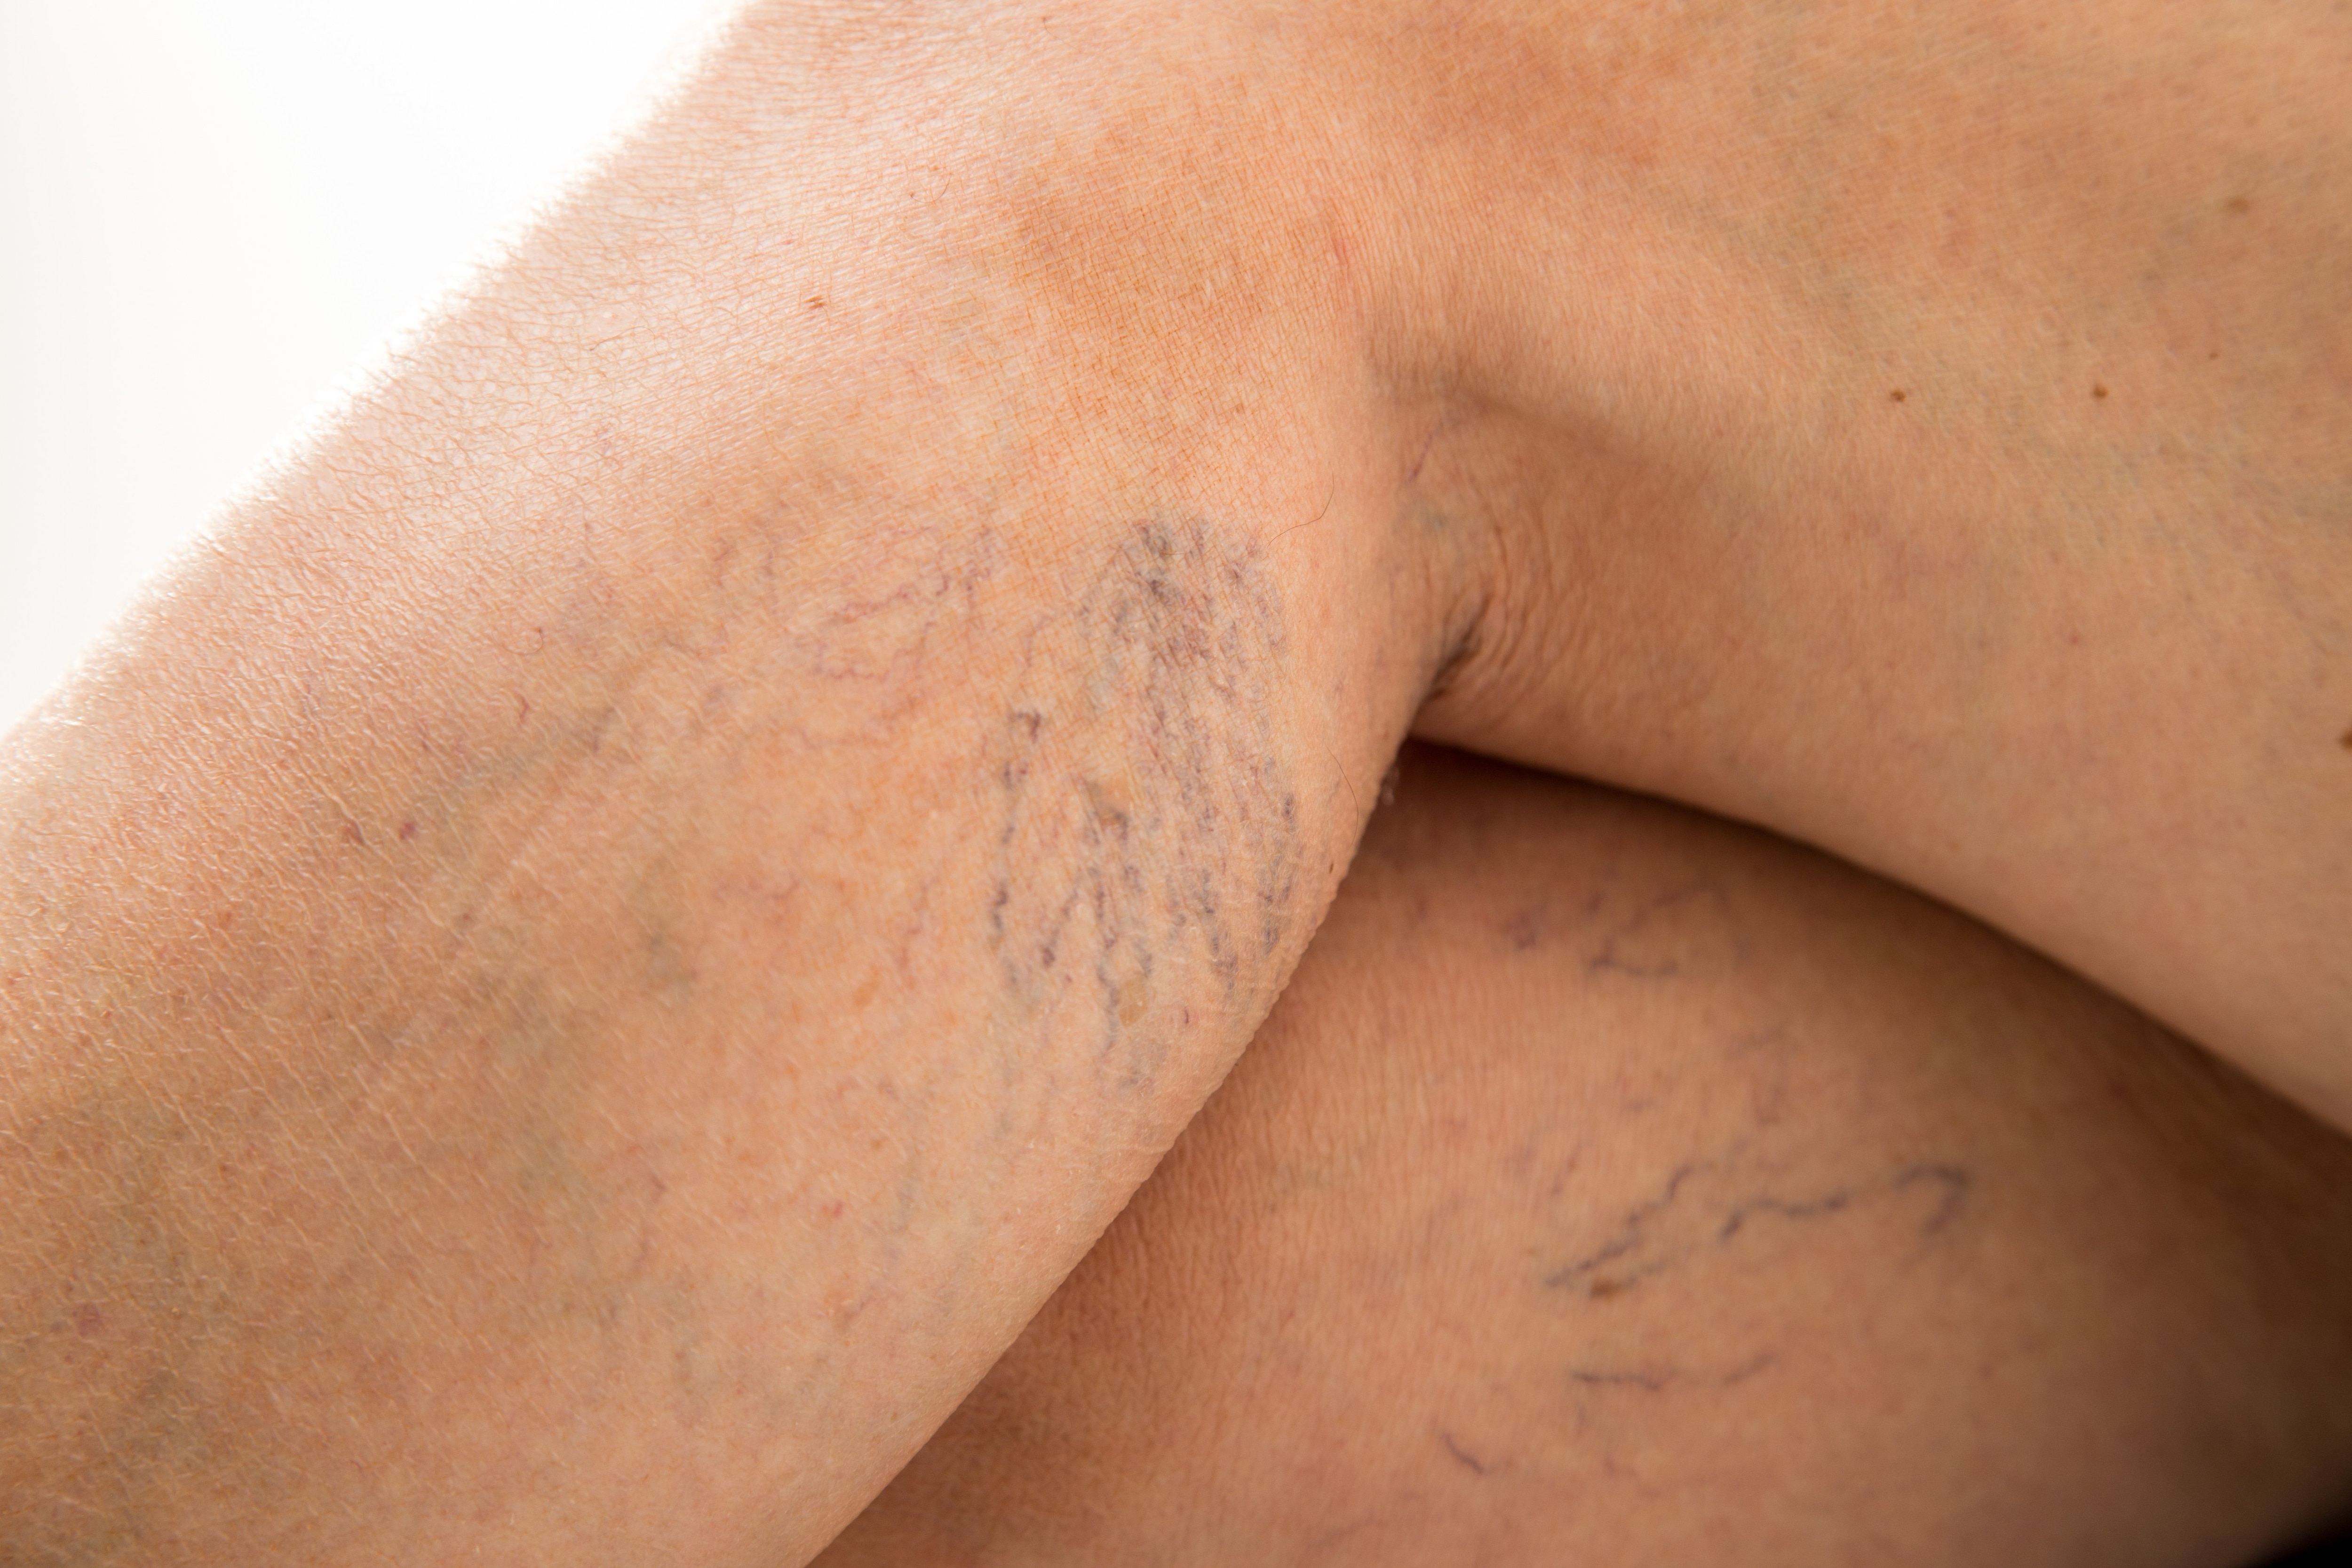 aa07e72f6 Do you have varicose veins  People have treated this somewhat unsightly  problem for a long time simply for cosmetic reasons. But varicose veins can  cause ...